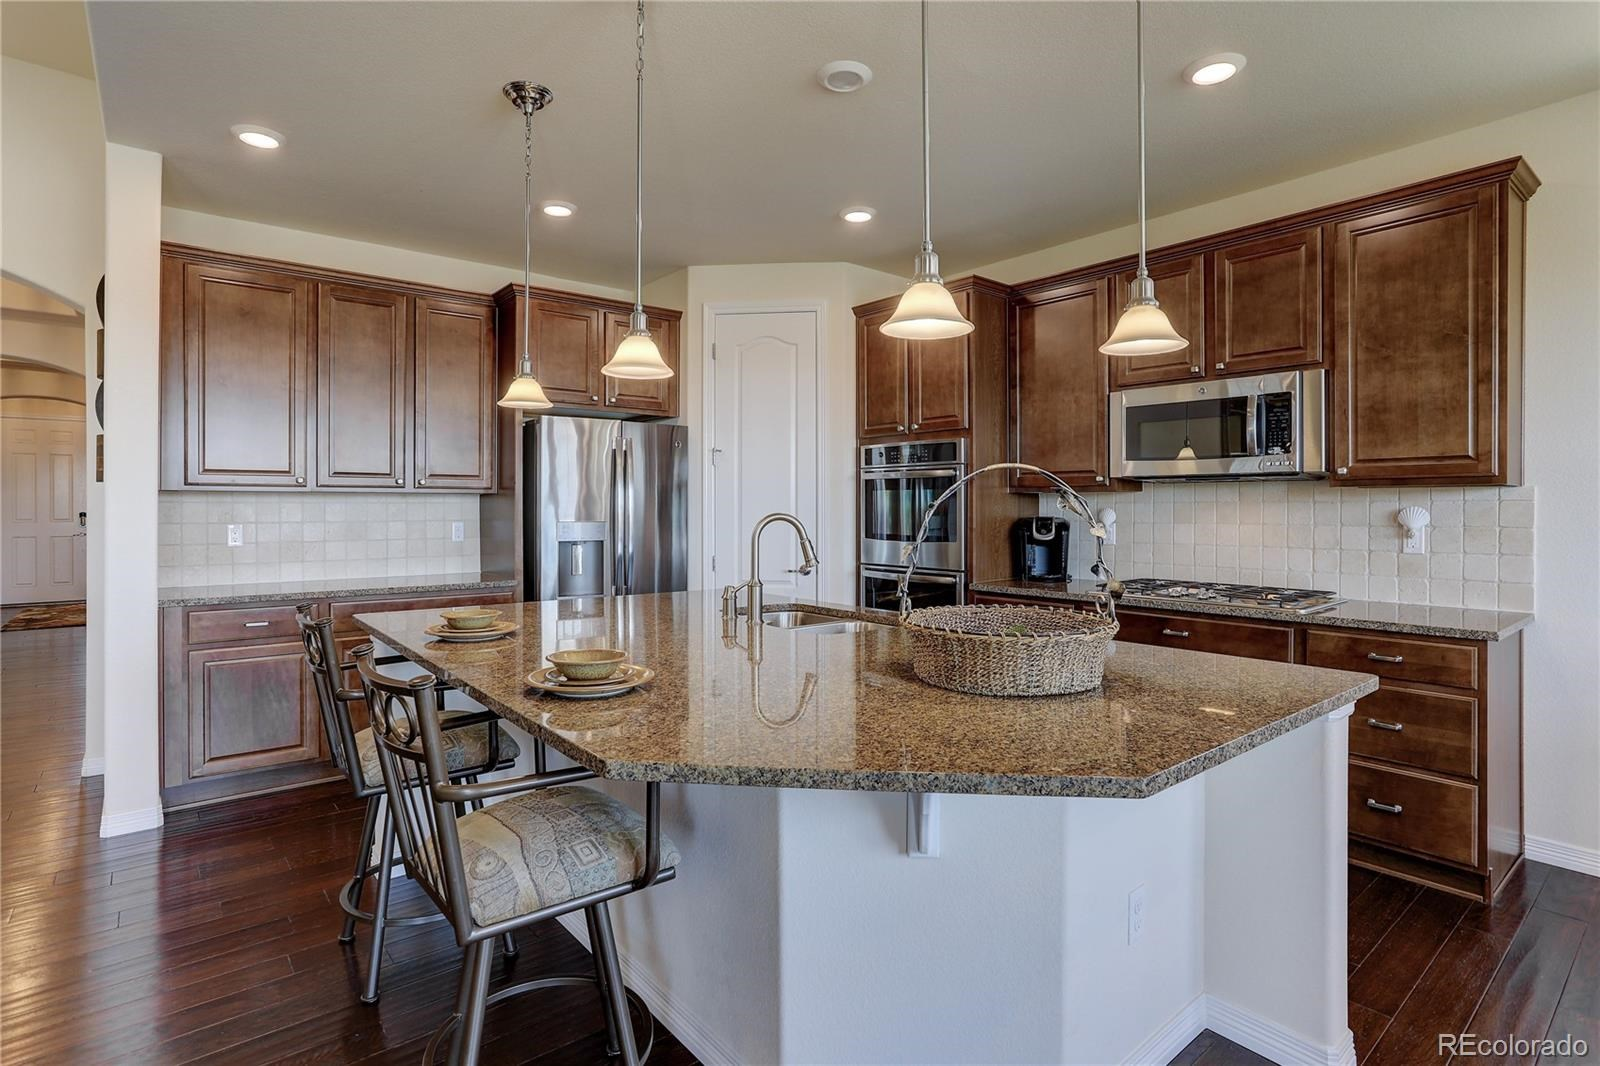 MLS# 8545425 - 12 - 7598 S Country Club Parkway, Aurora, CO 80016